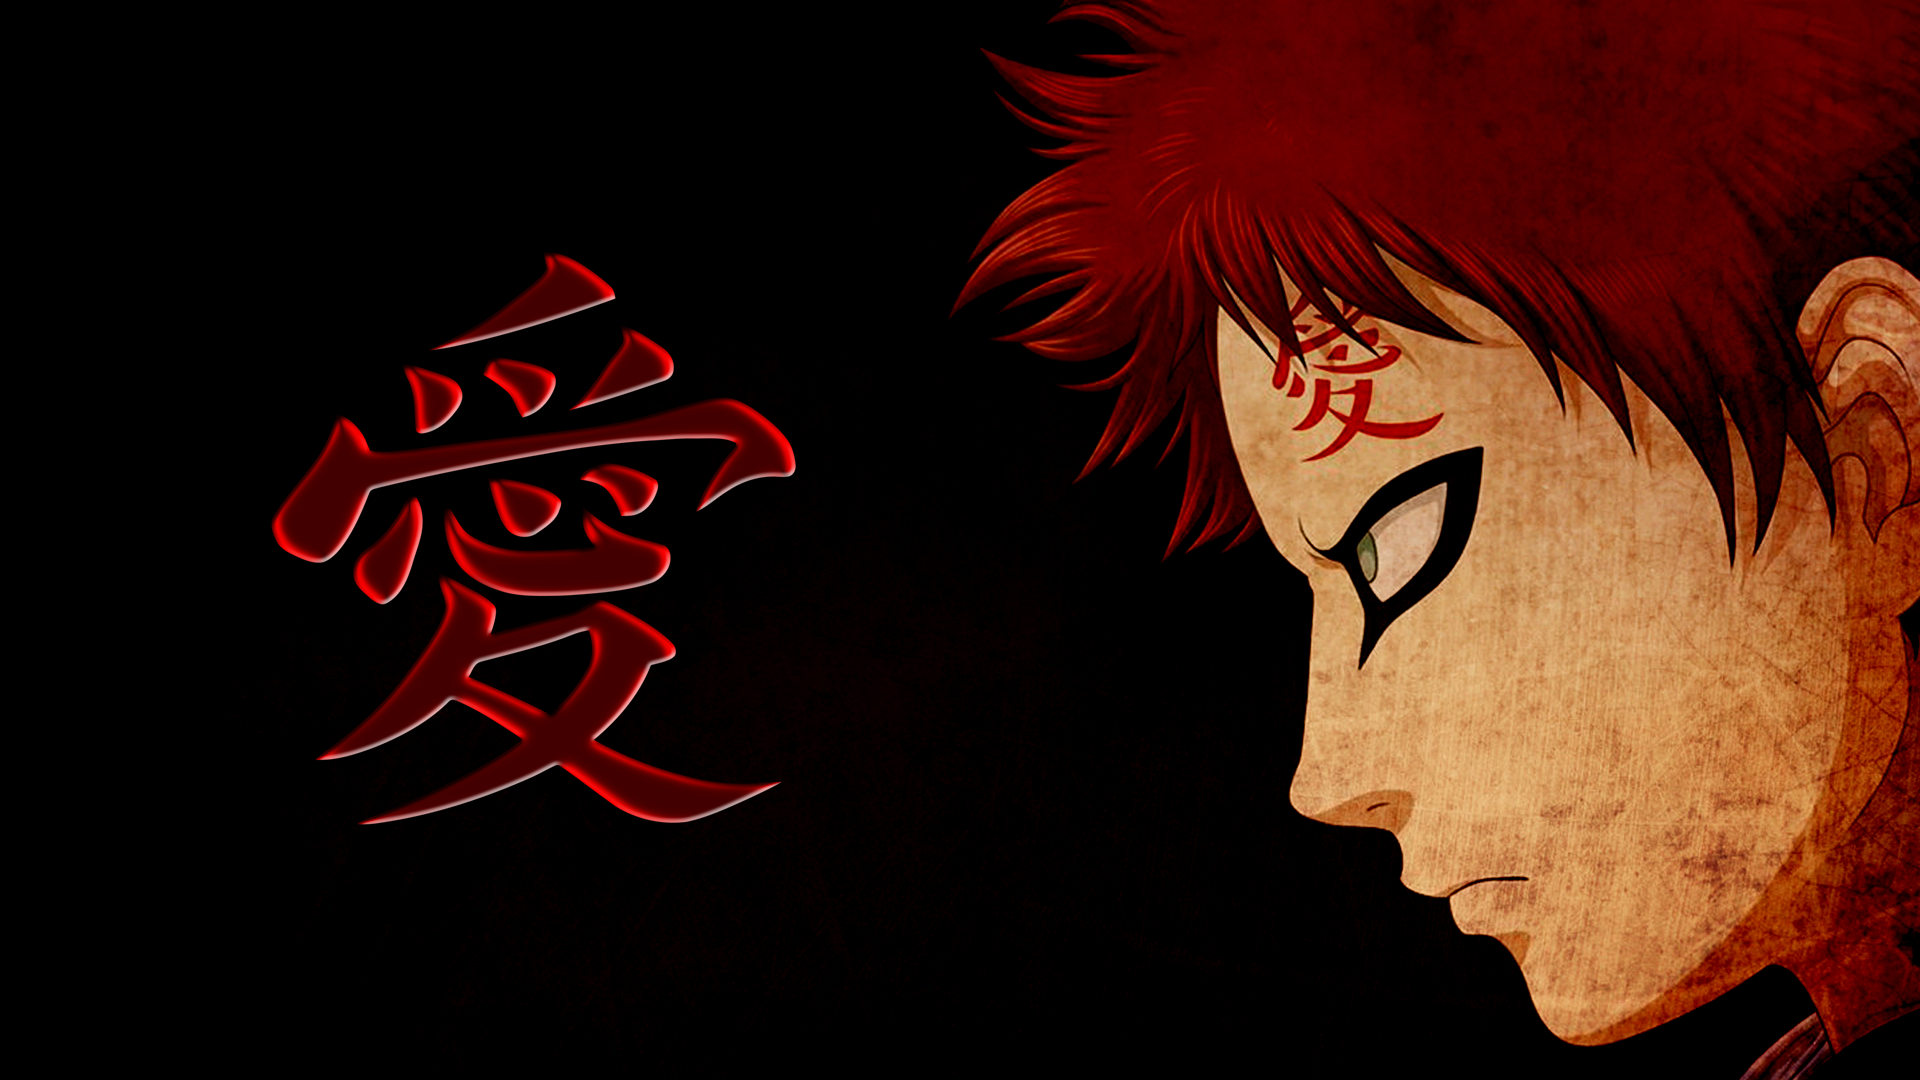 Gaara Wallpaper 2 by Jackydile 1920x1080